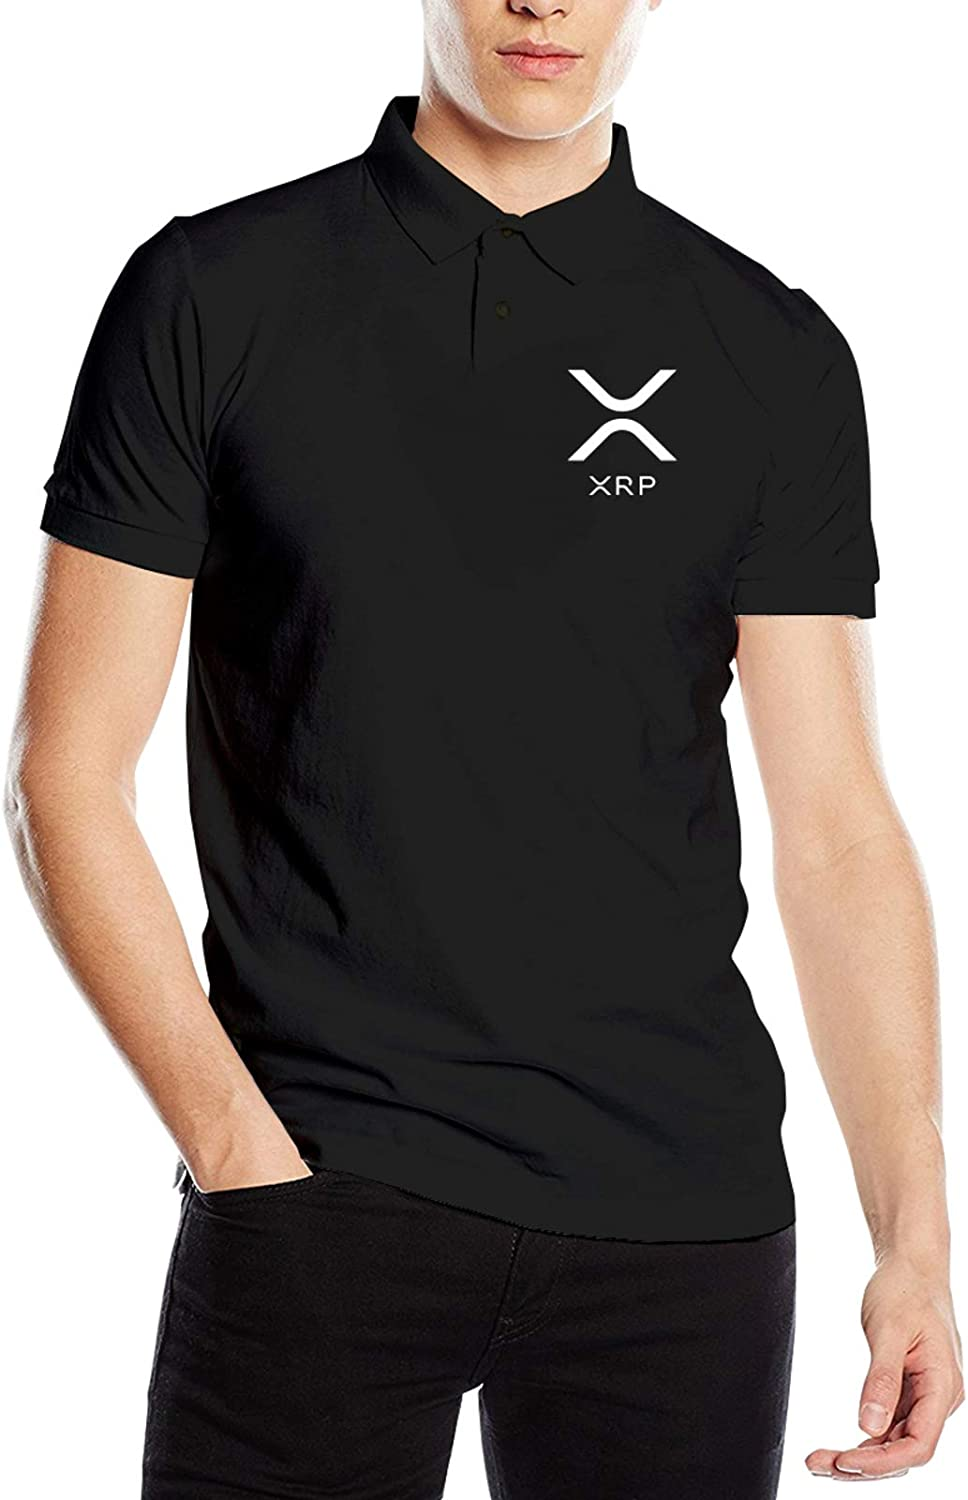 Ripple Xrp Logo Polo Shirts wholesale Short Contract Over item handling ☆ Men's Classics Sleeve